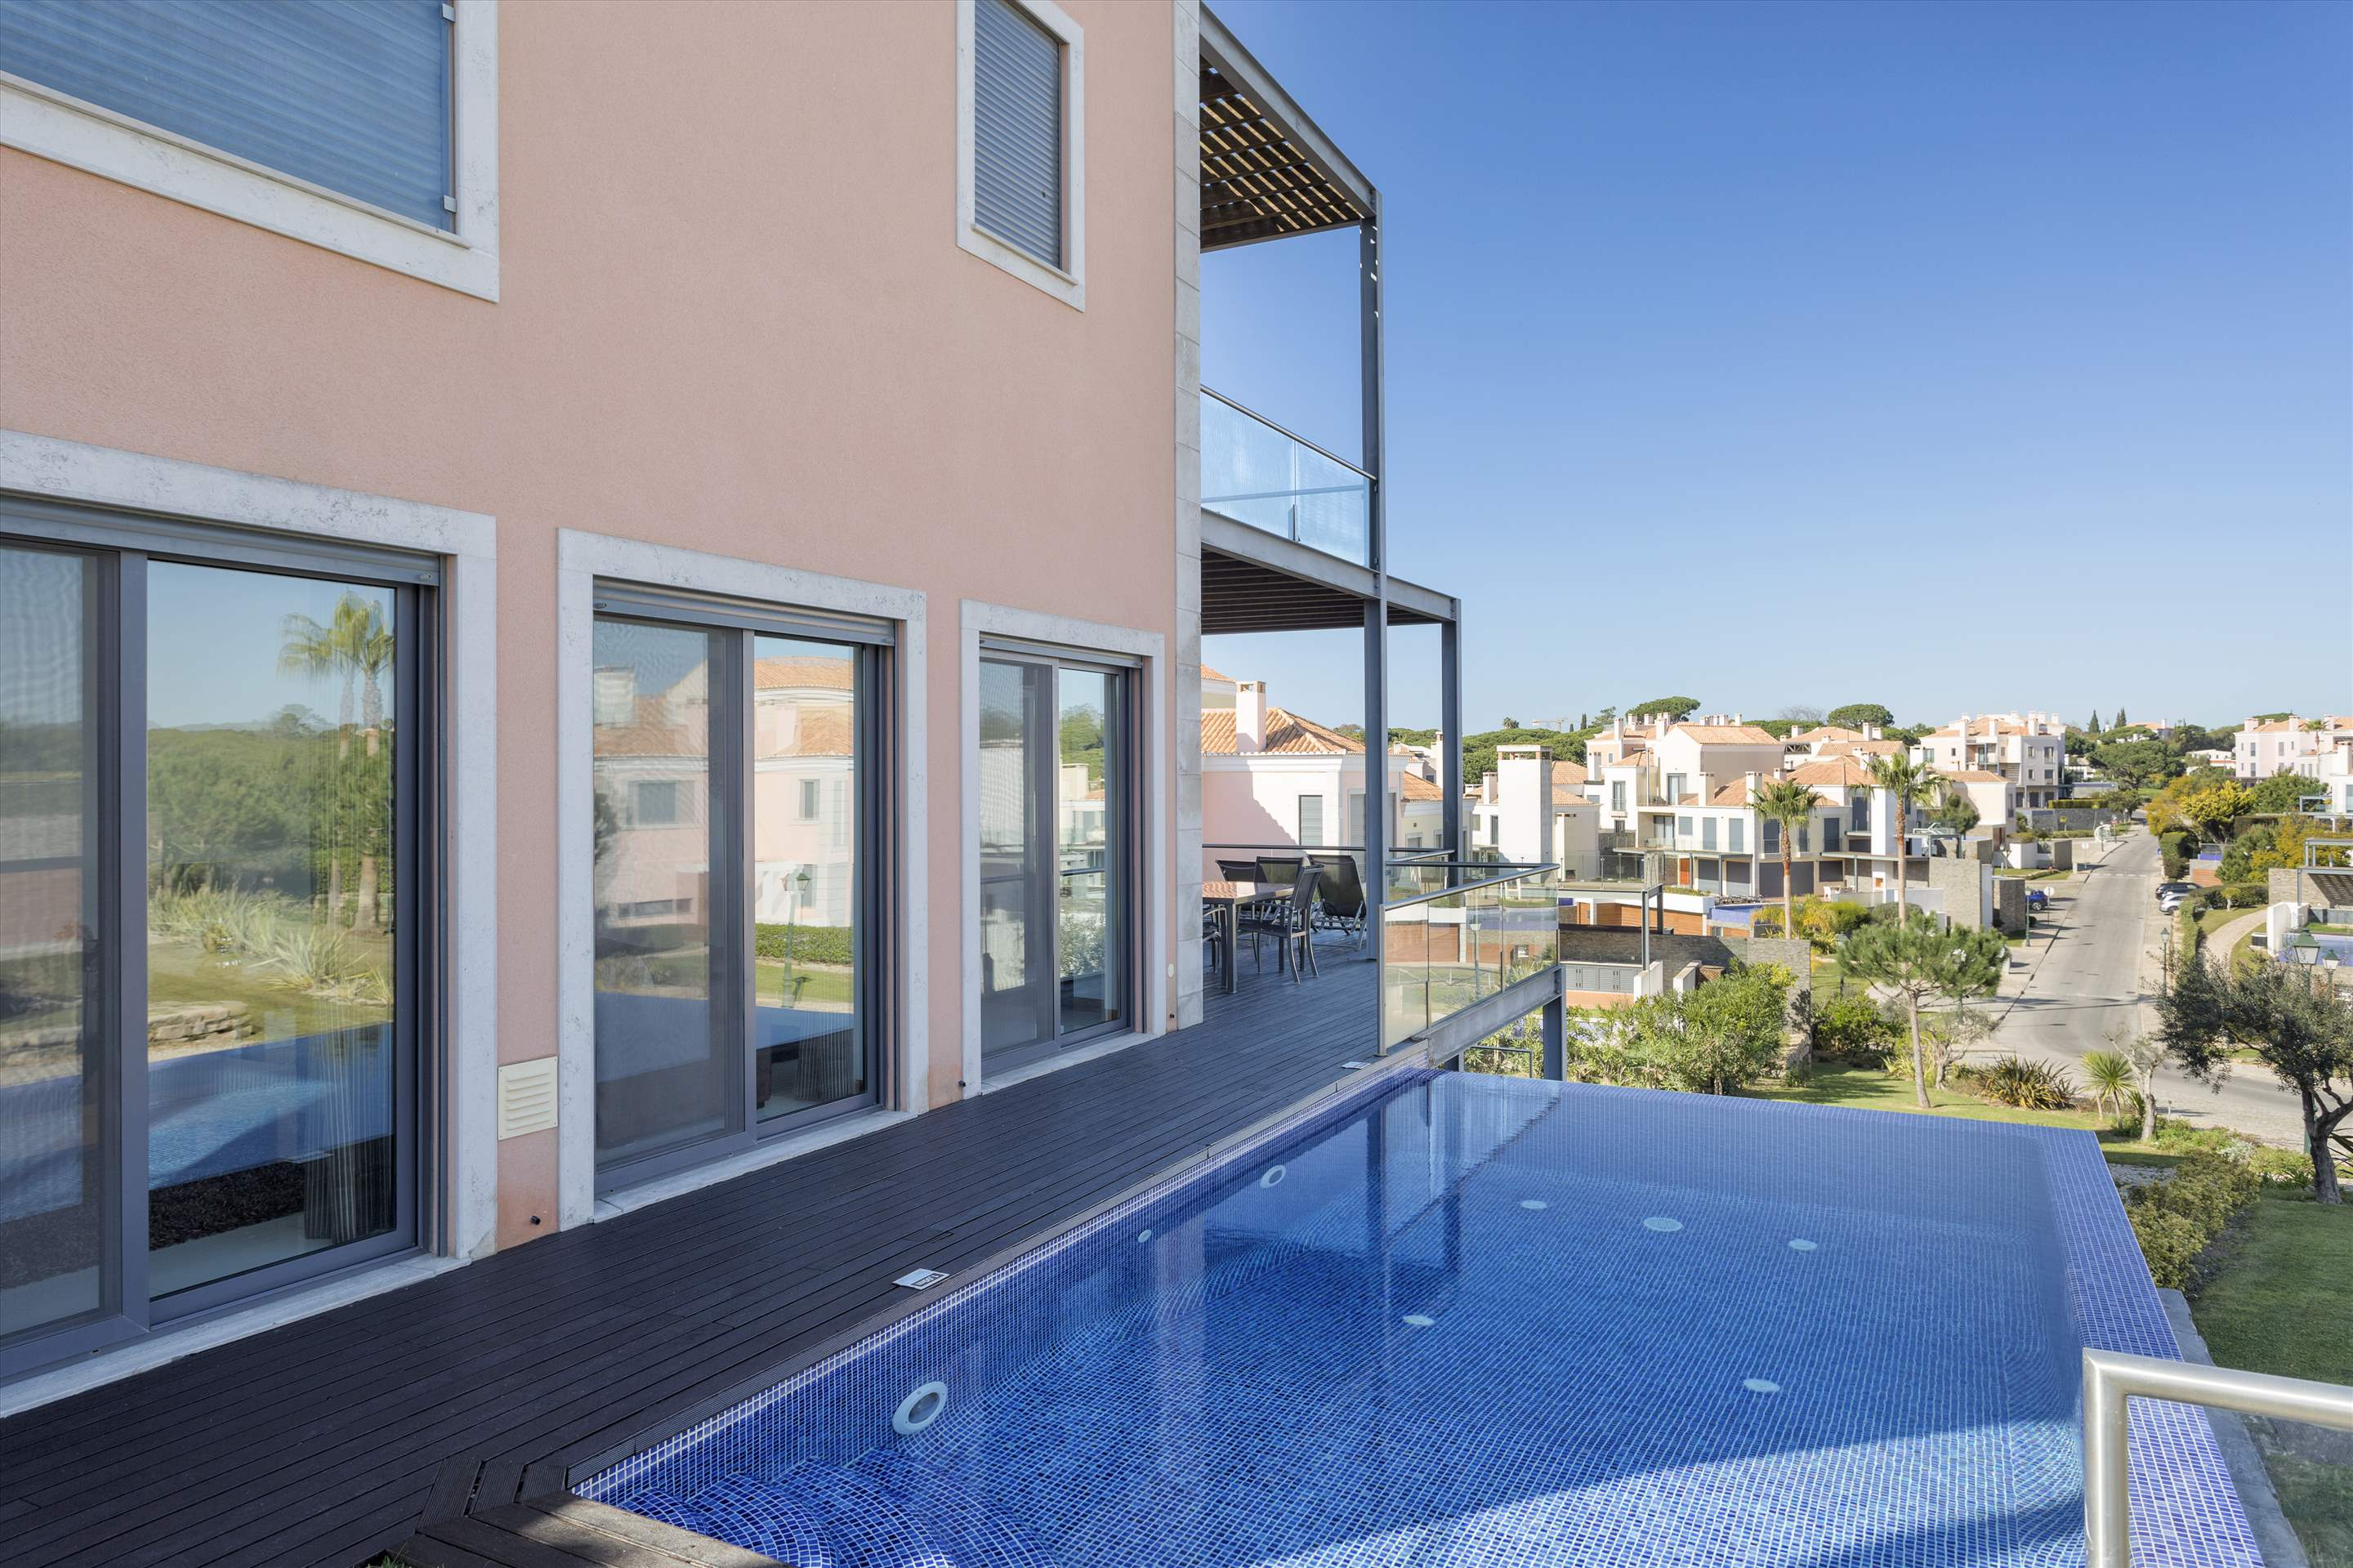 Apartment Fernanda, 2 bedroom apartment in Vale do Lobo, Algarve Photo #1